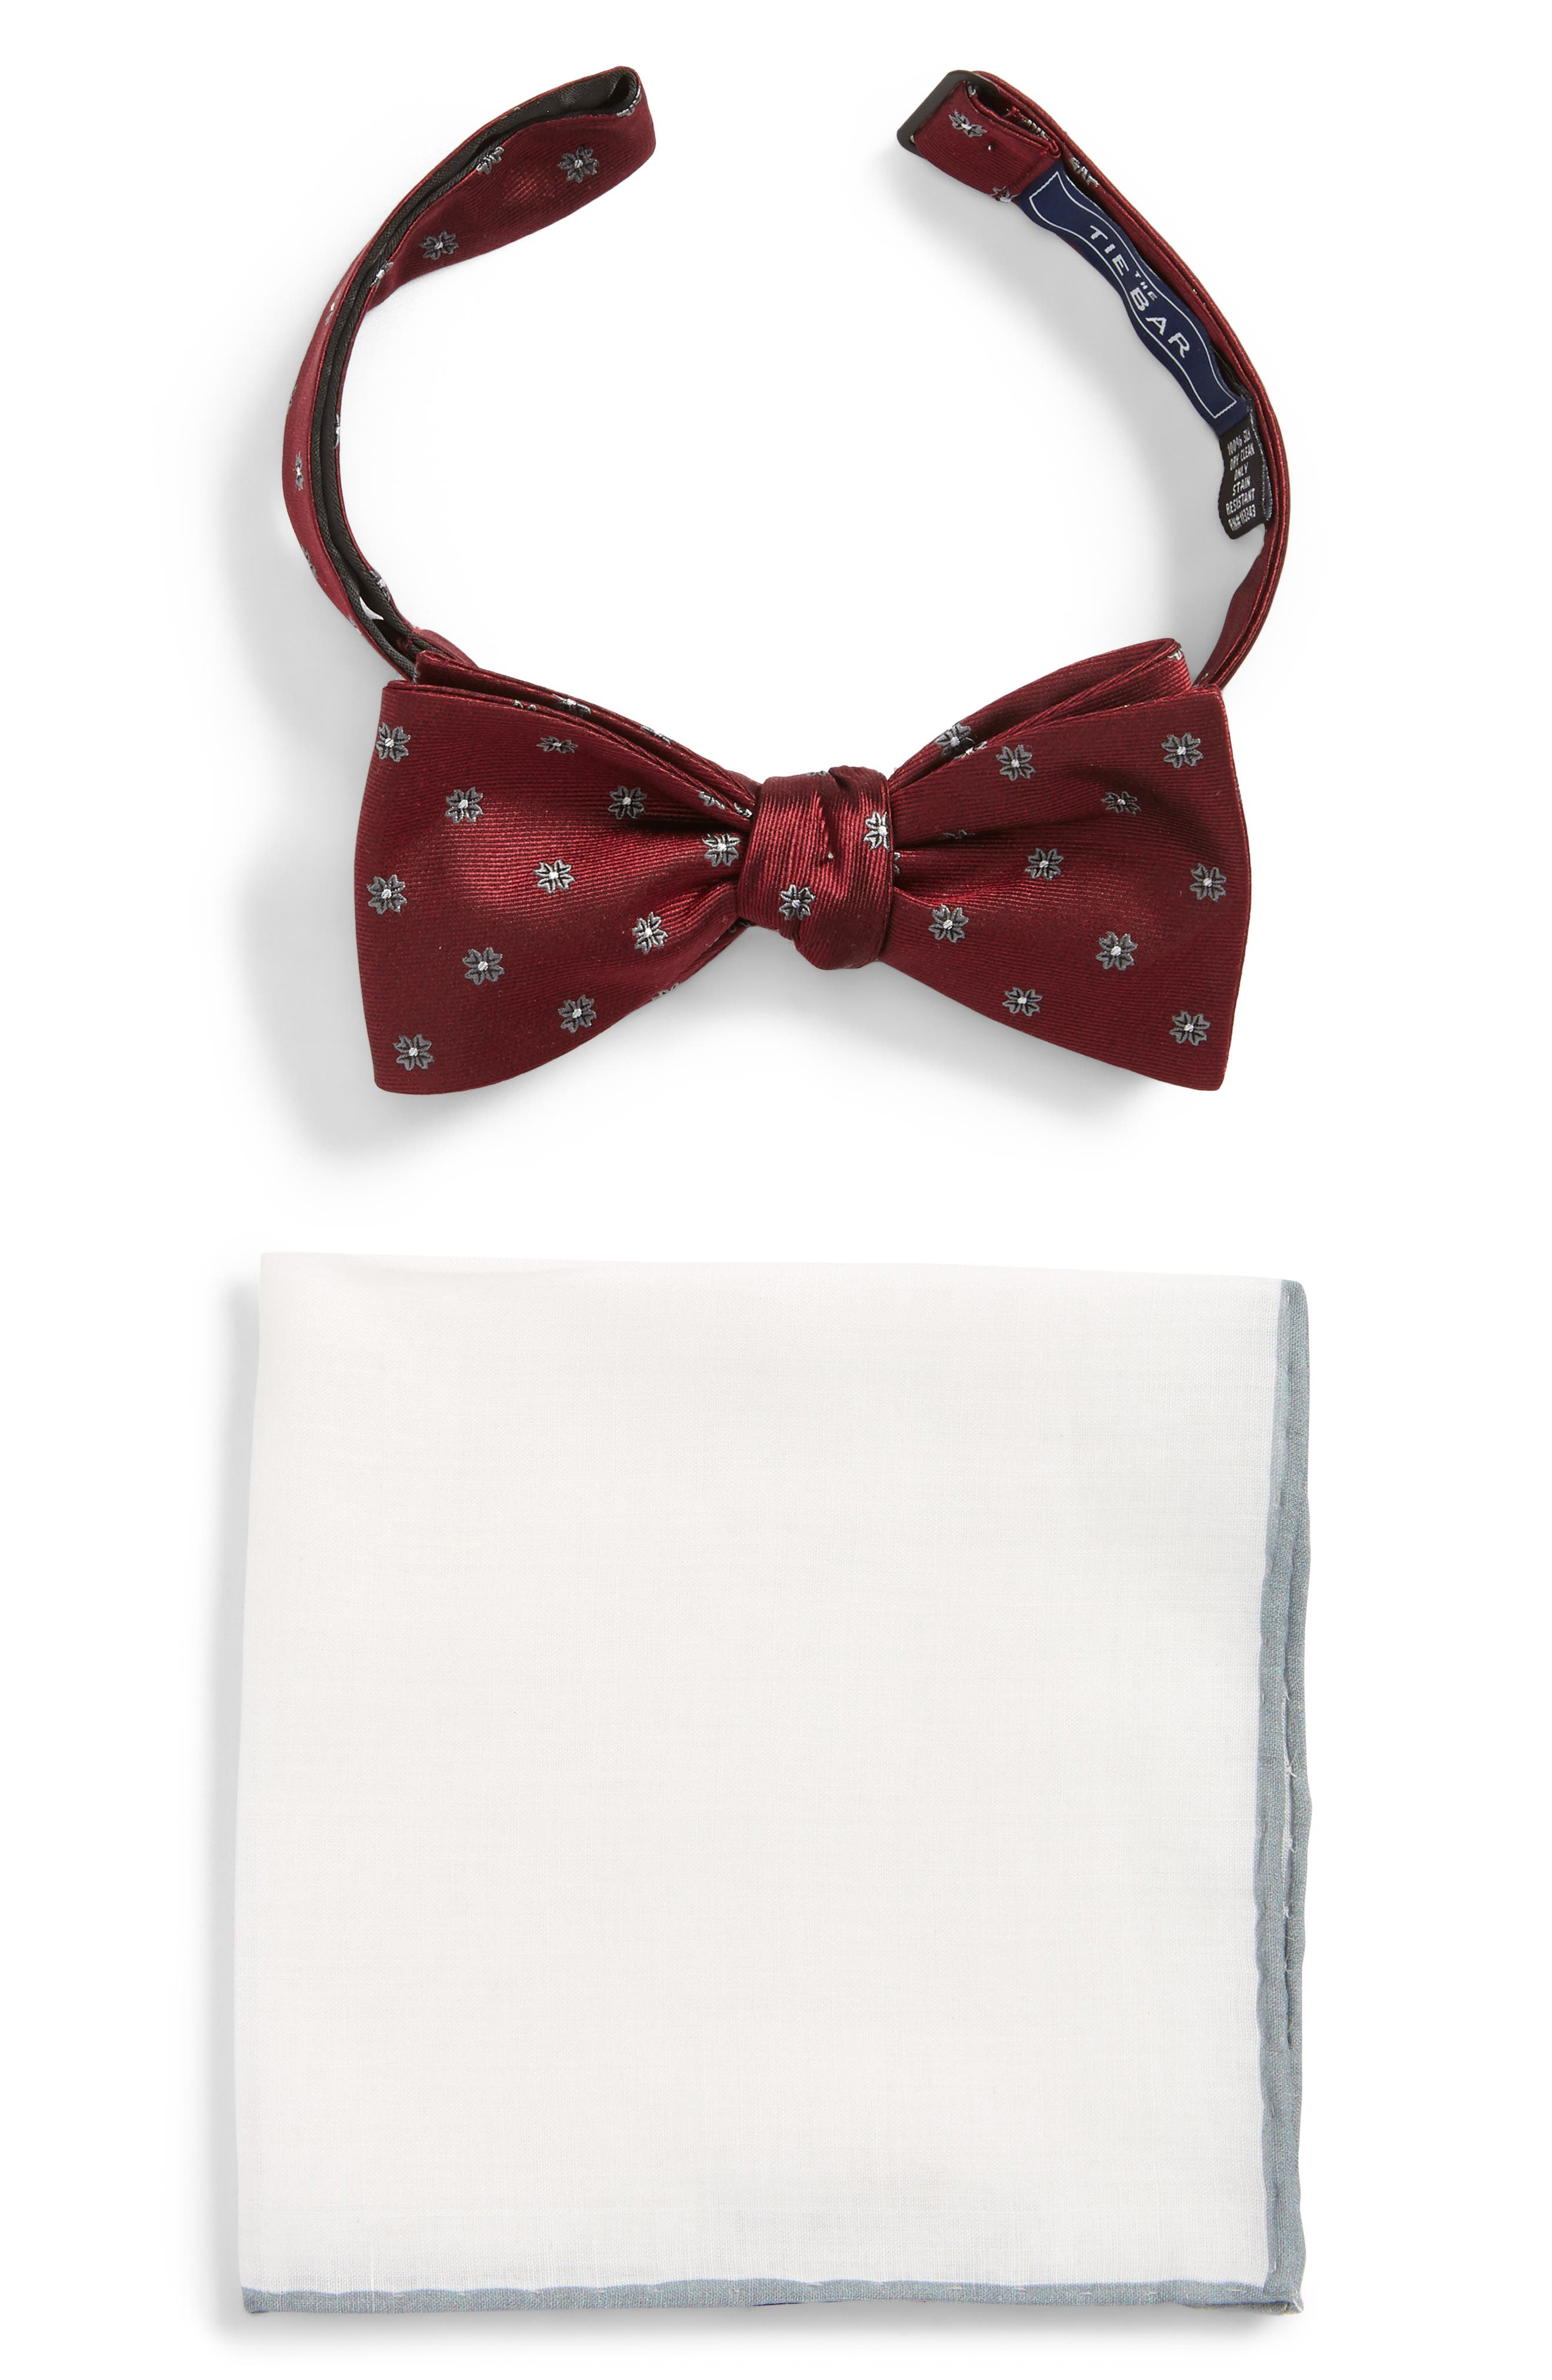 Bow Tie & Pocket Square Box Set,                             Main thumbnail 1, color,